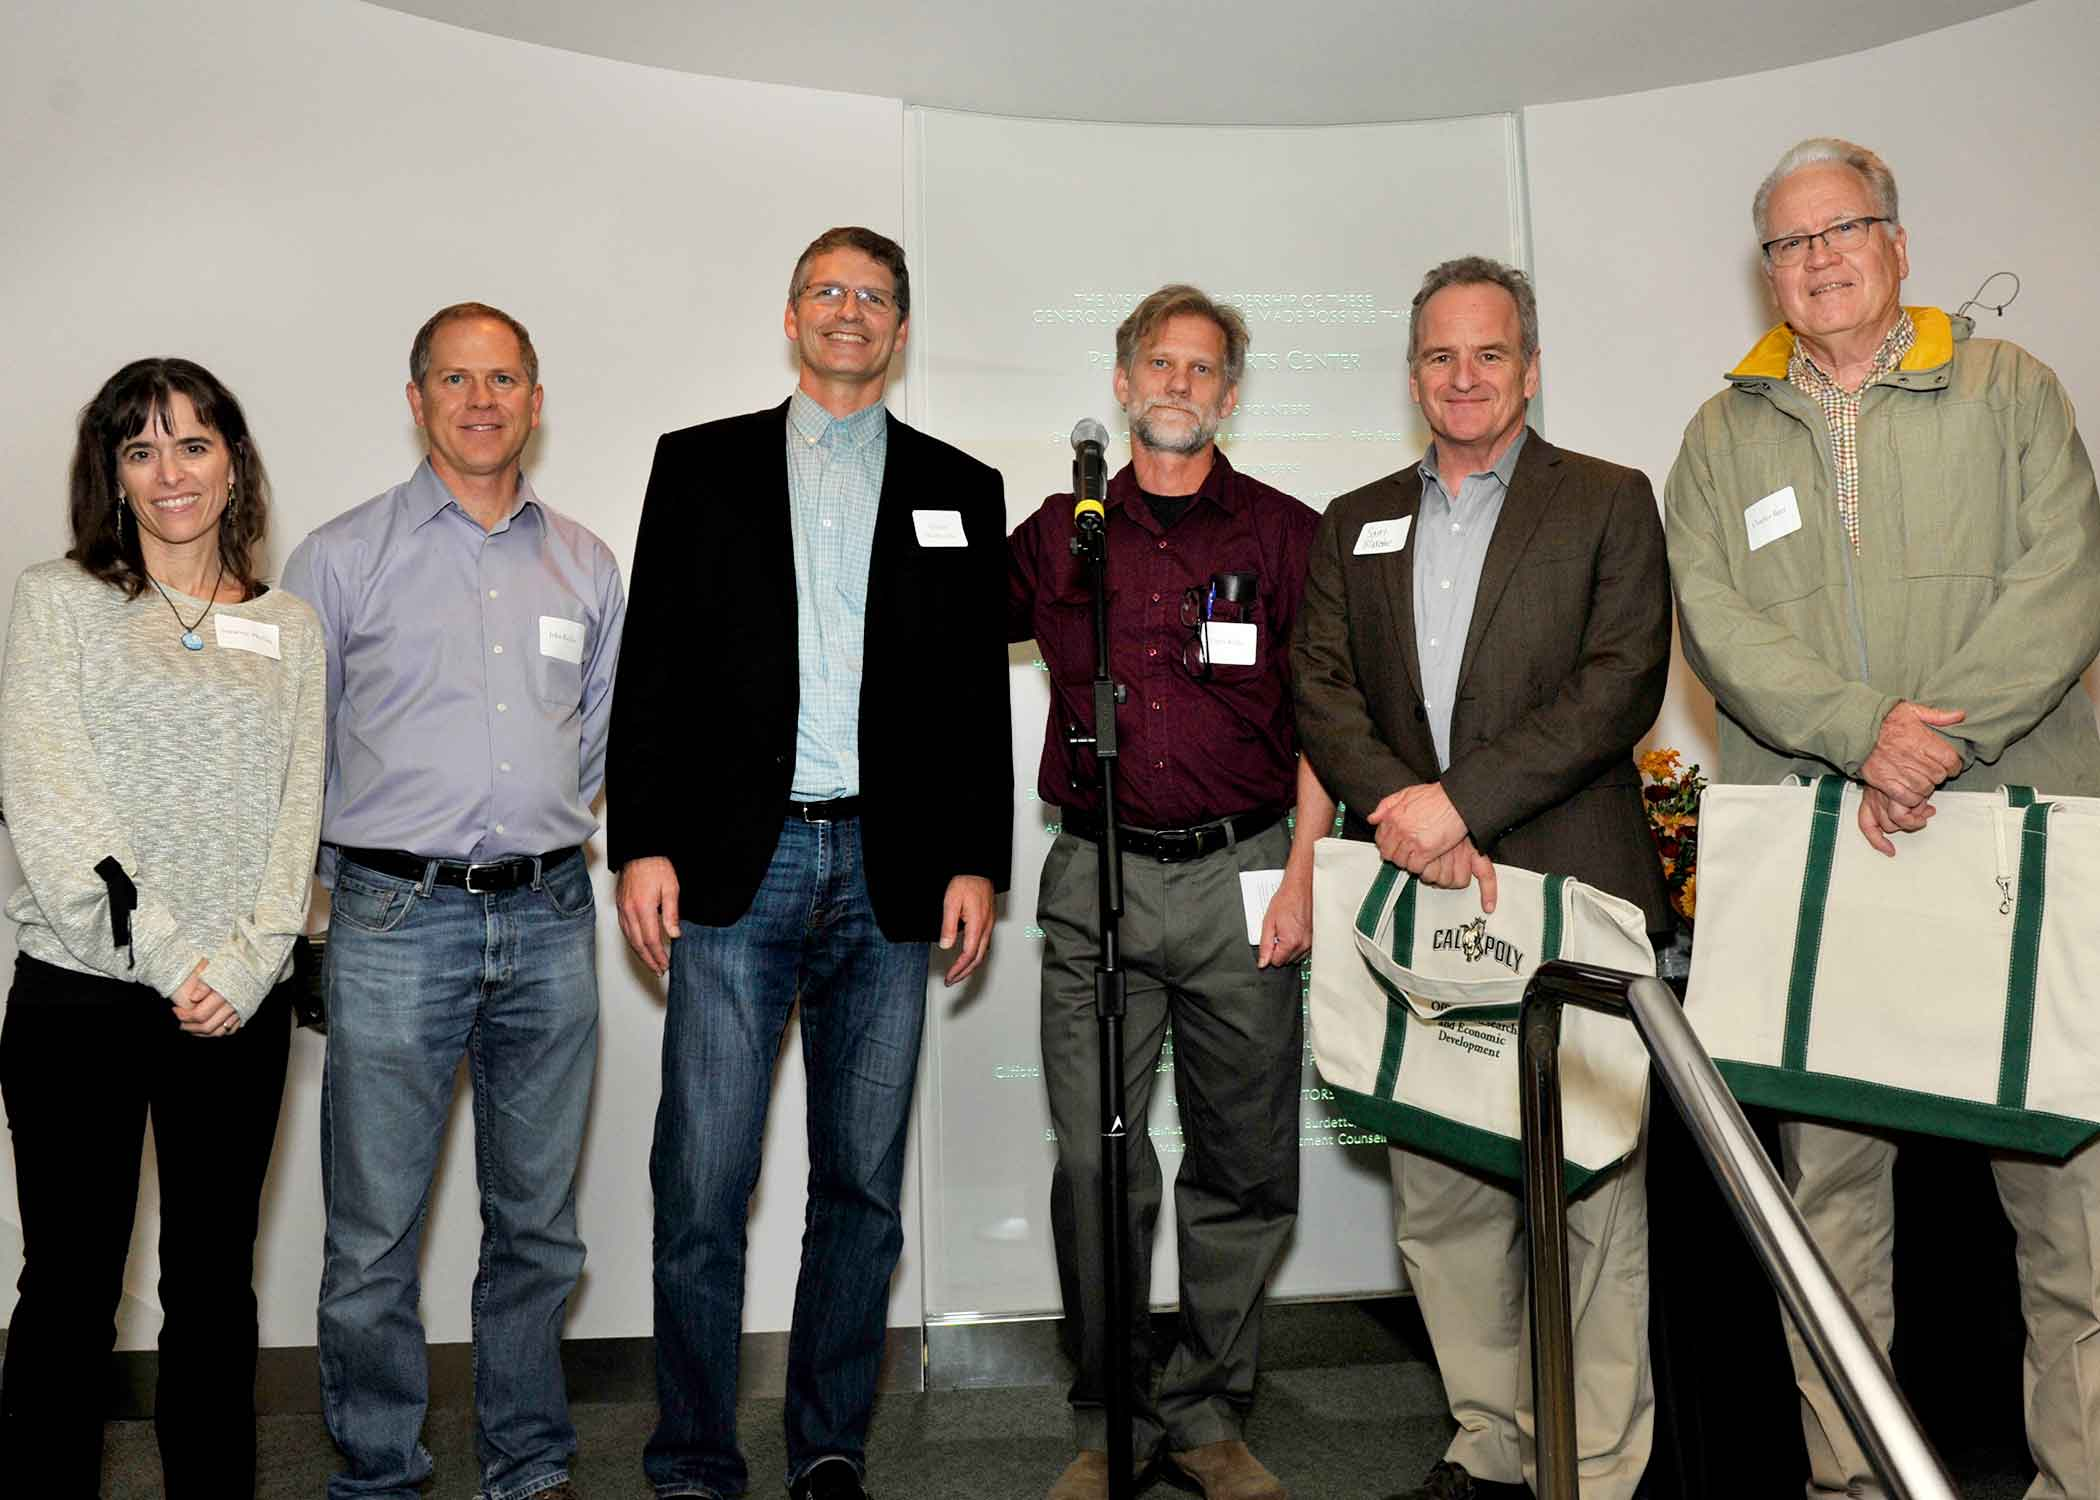 Group photo of some Cal Poly university researchers.